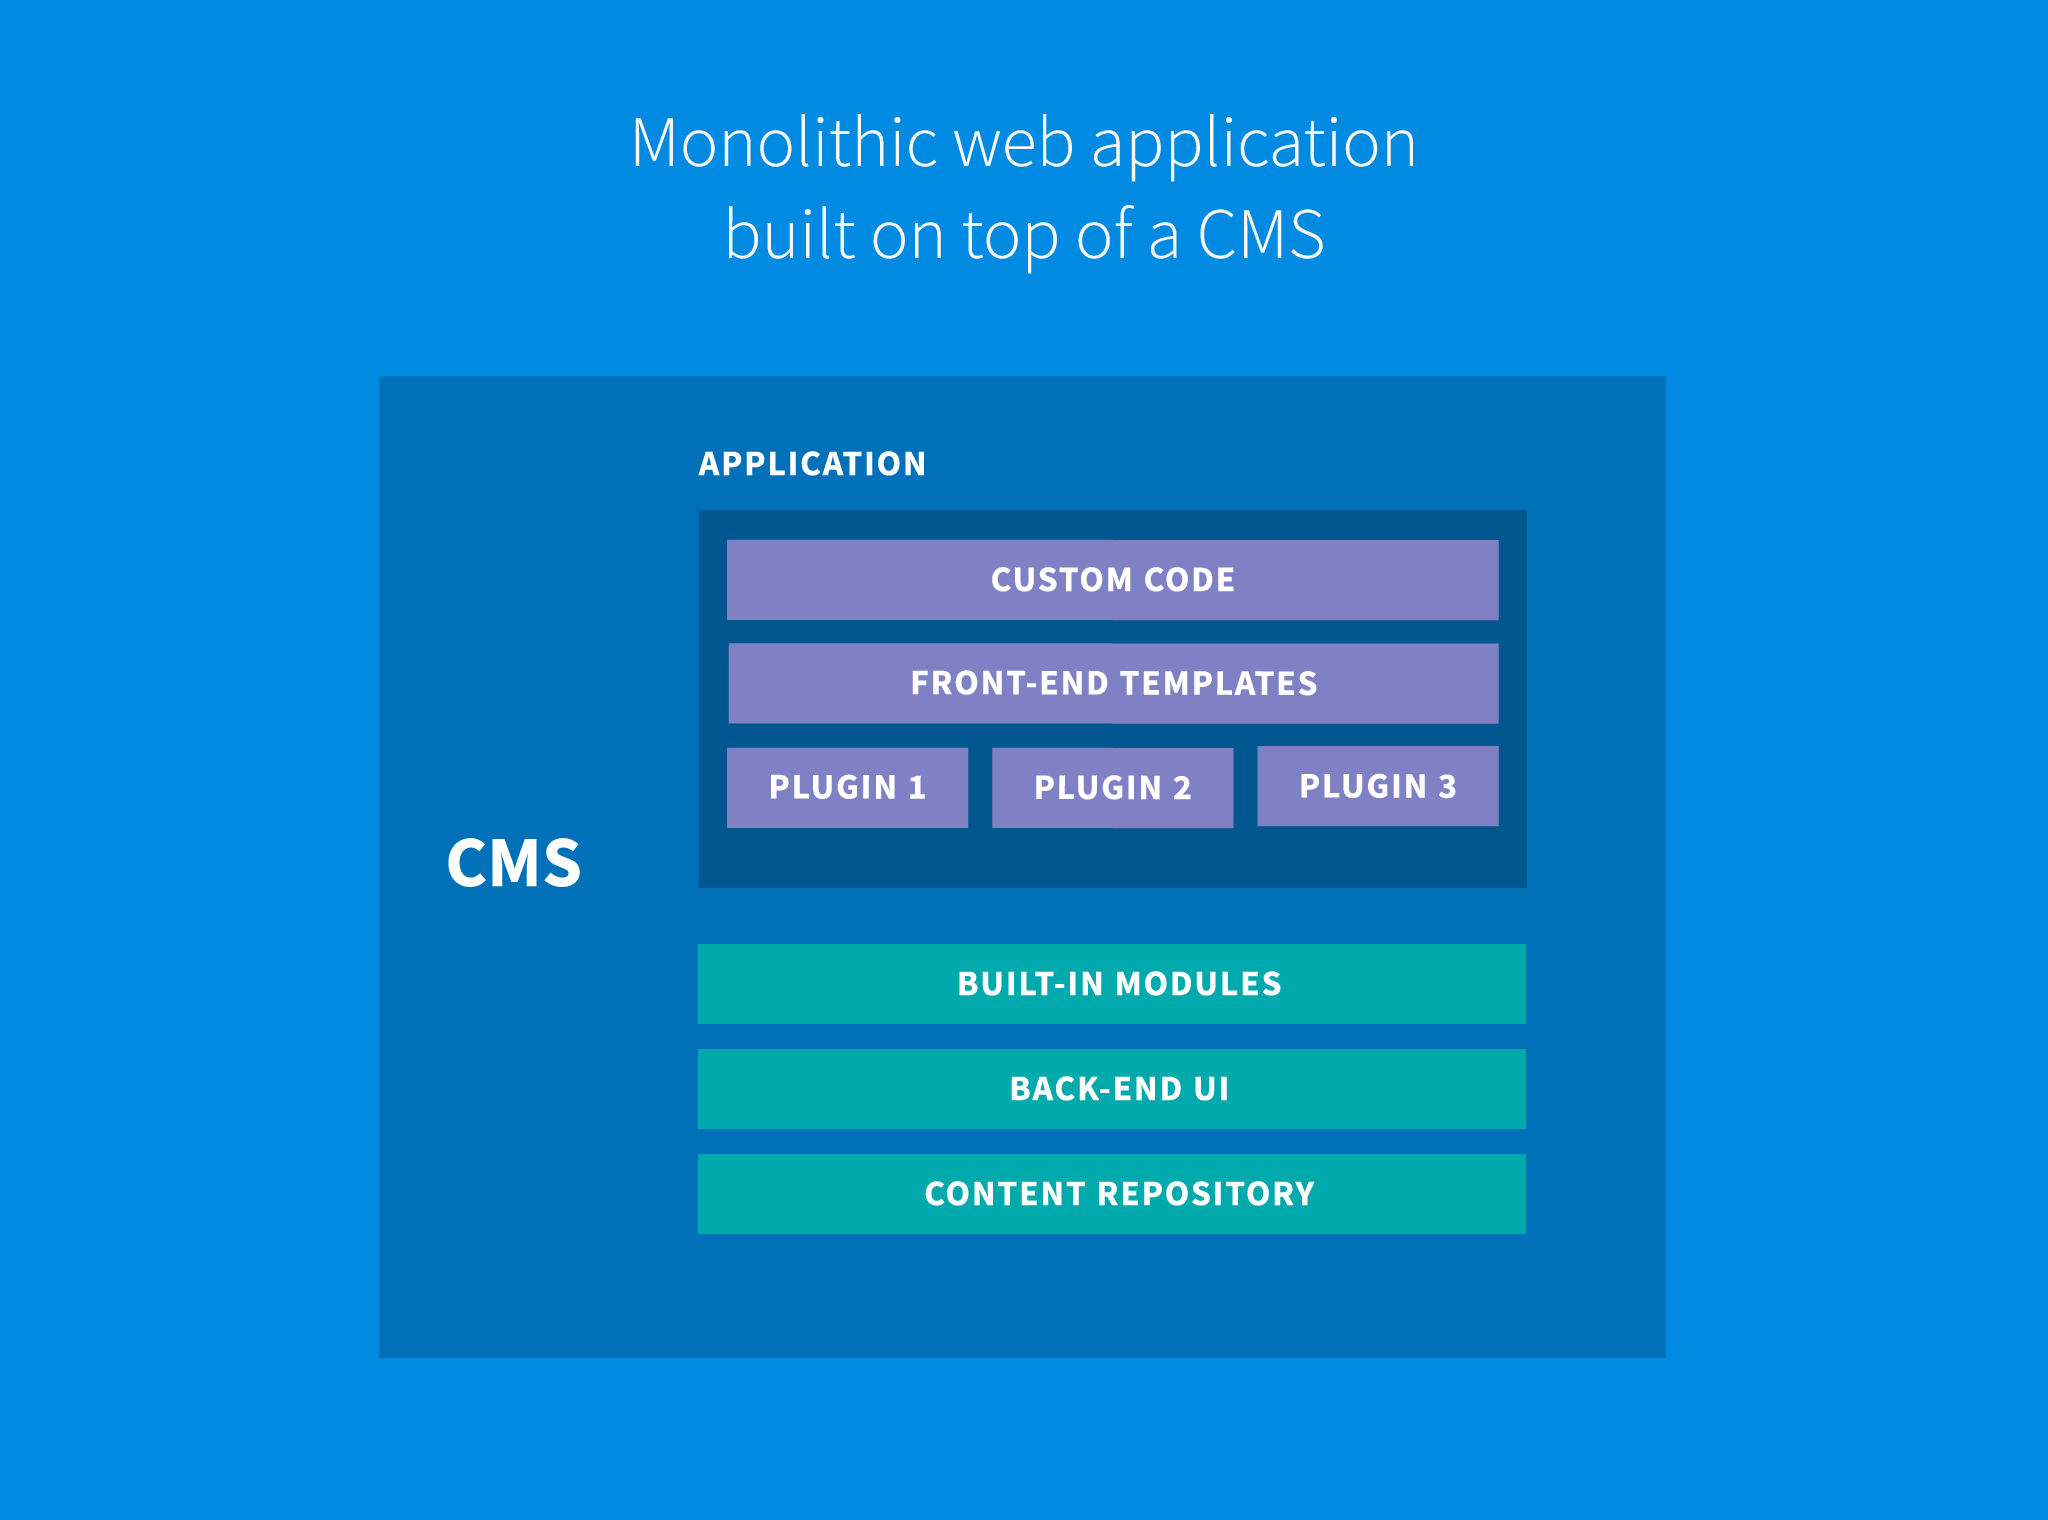 Monolithic CMS architecture